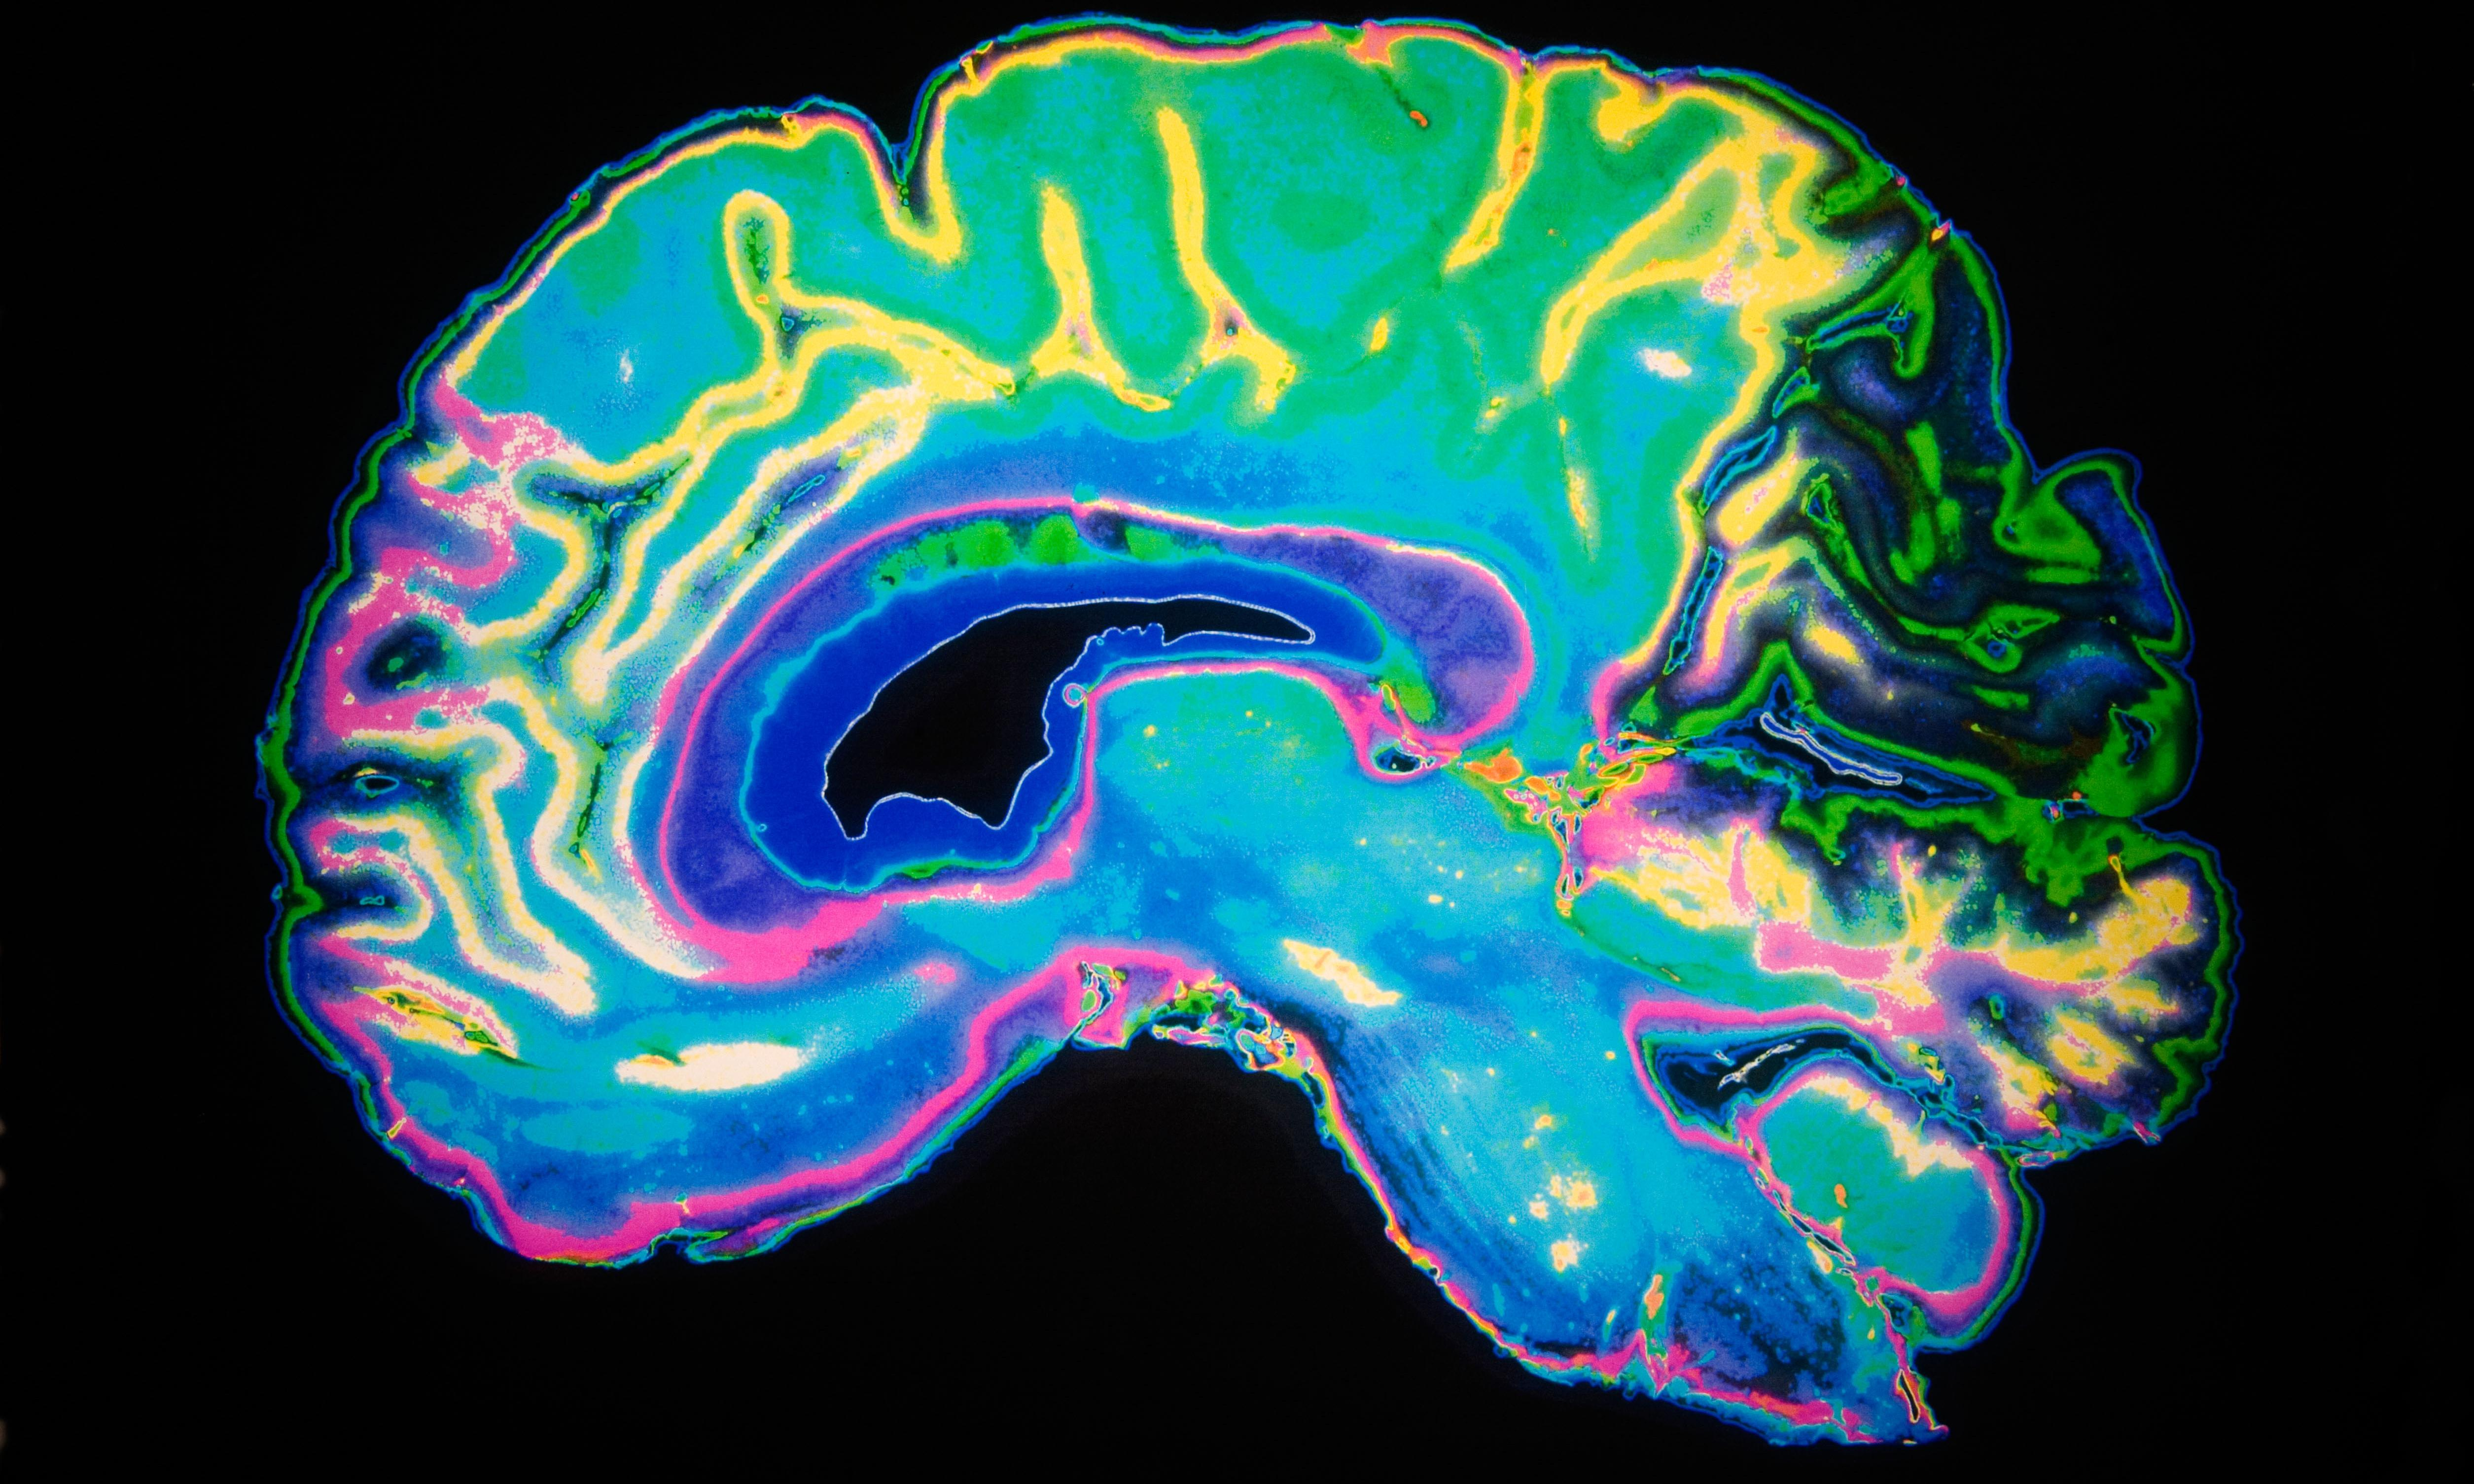 Long-term offenders have different brain structure, study says